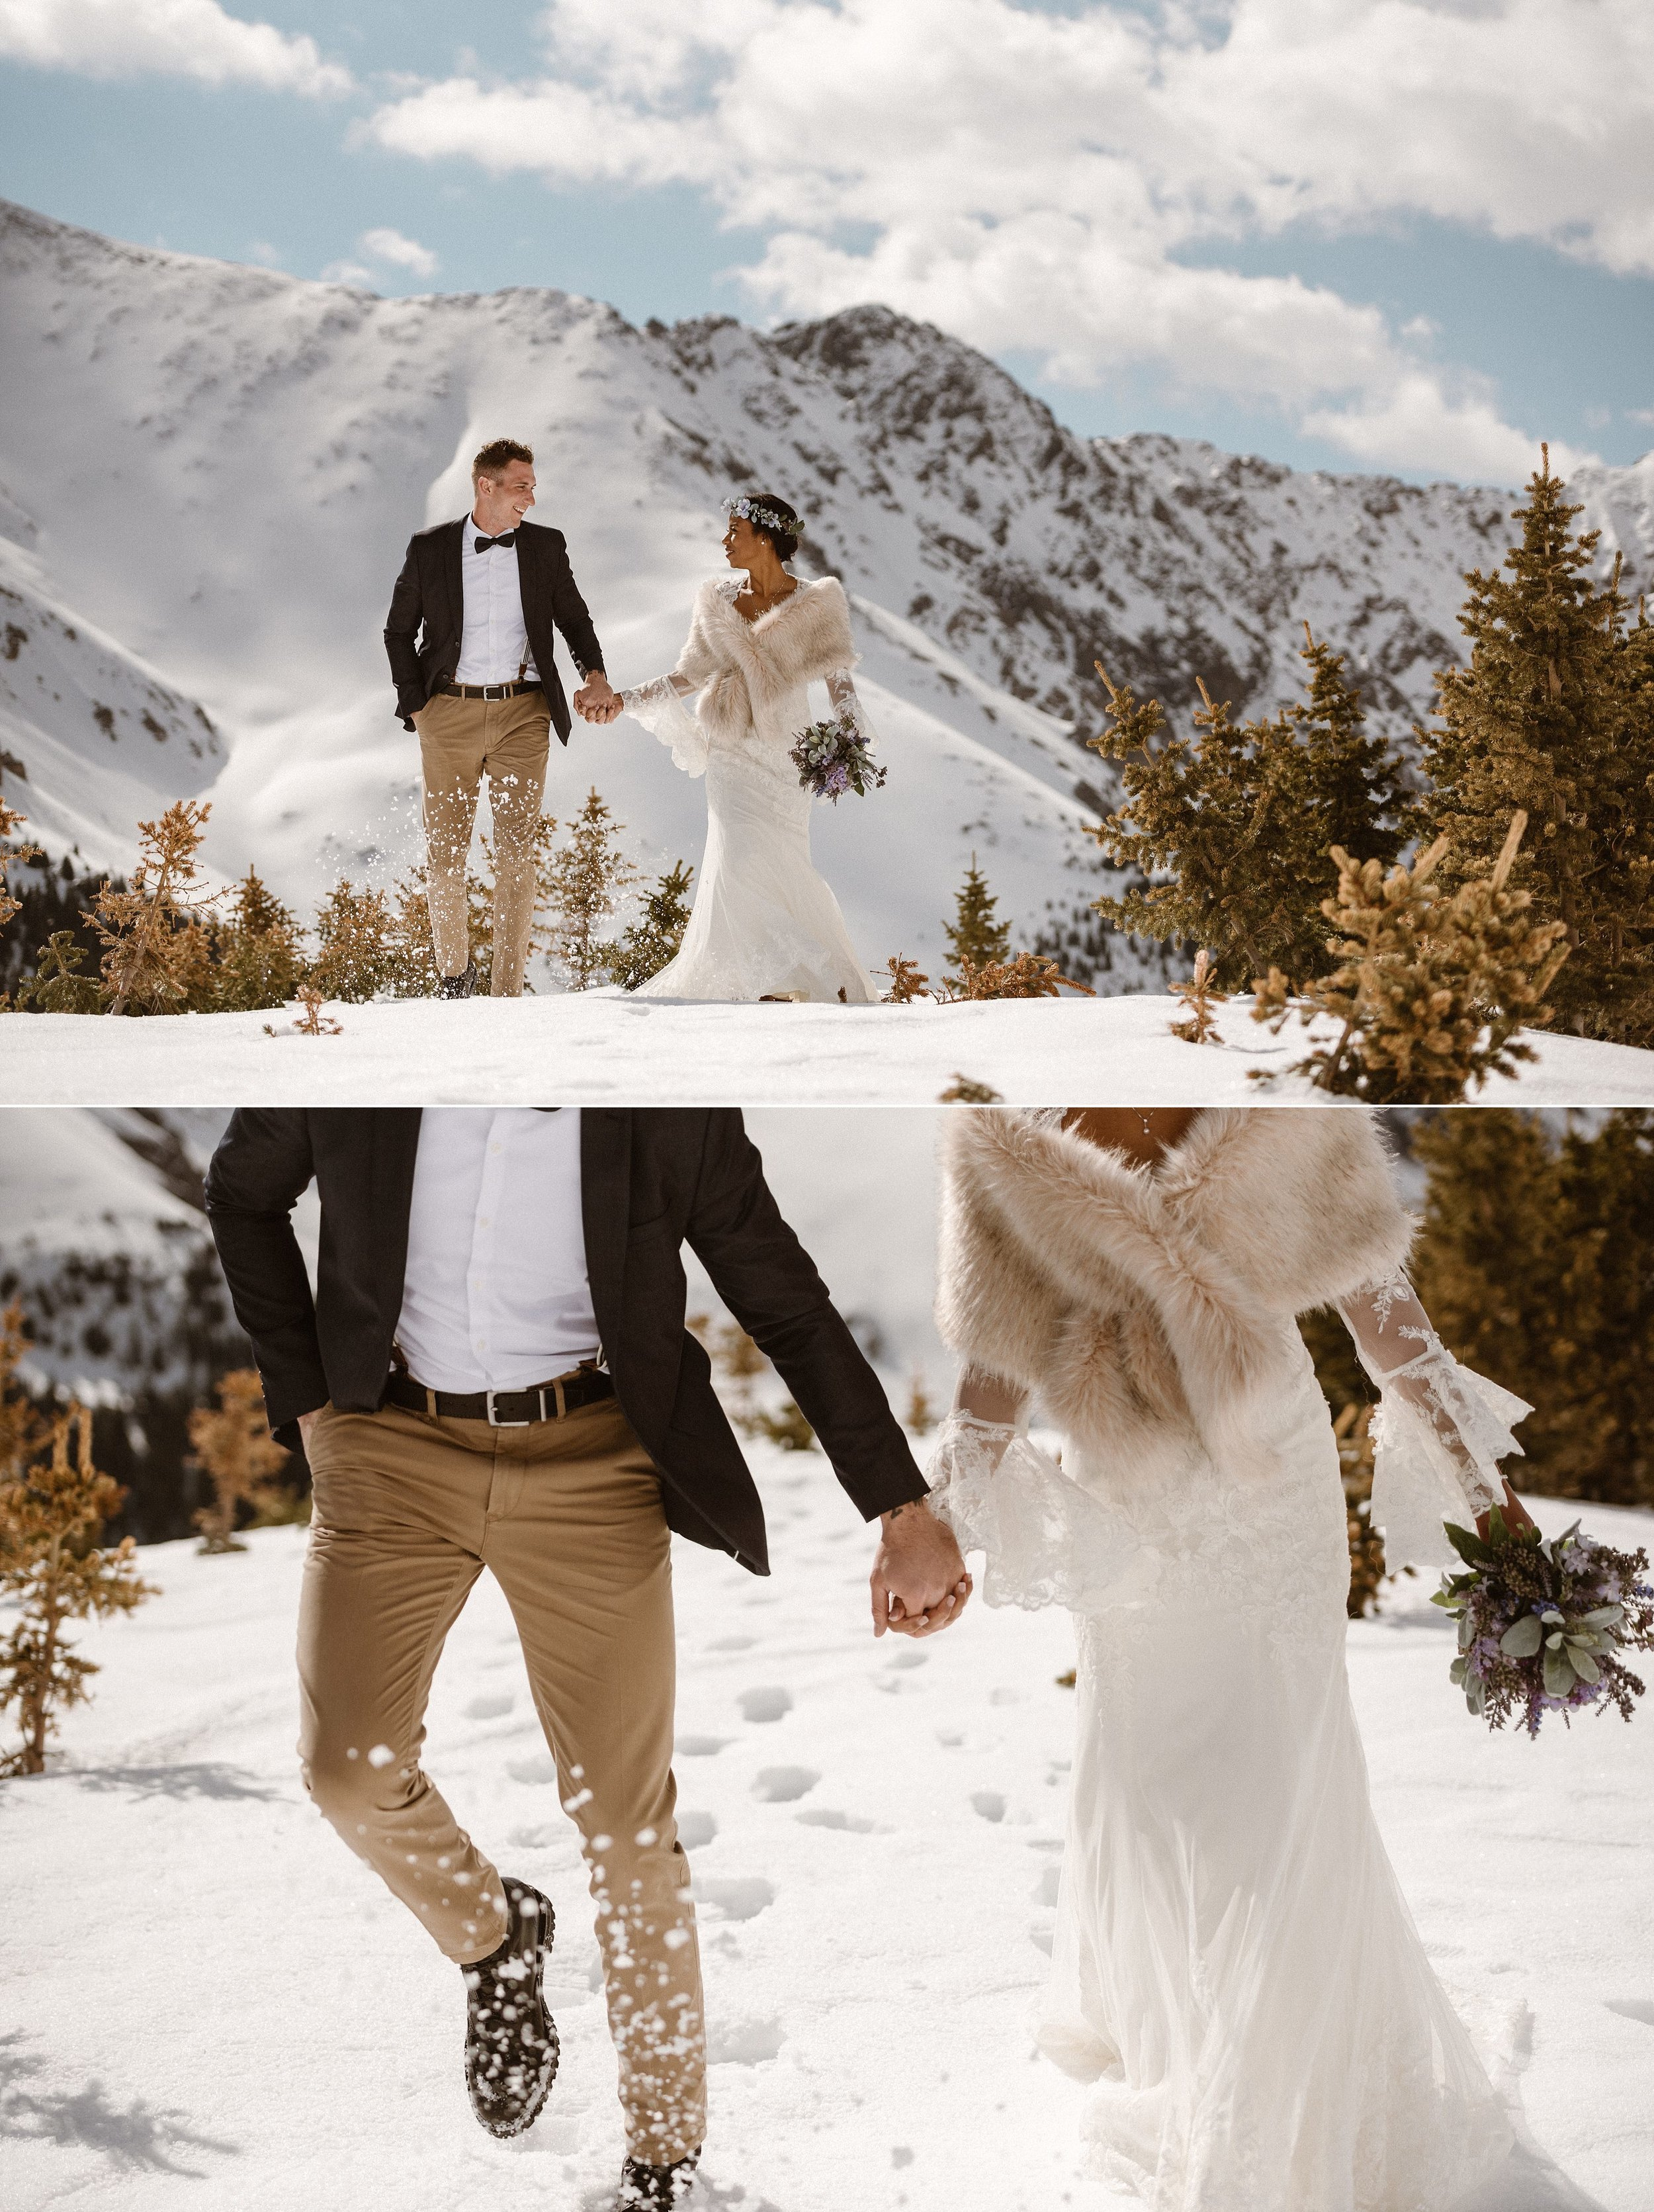 They sank into the snow as they made their way off the beaten trails of Loveland Pass on their adventurous elopement. This romantic couple took to the outdoors in the middle of winter to celebrate their private nuptials with an elopement in the Colorado mountains with only their intimate elopement photographer Maddie Mae as their witness.